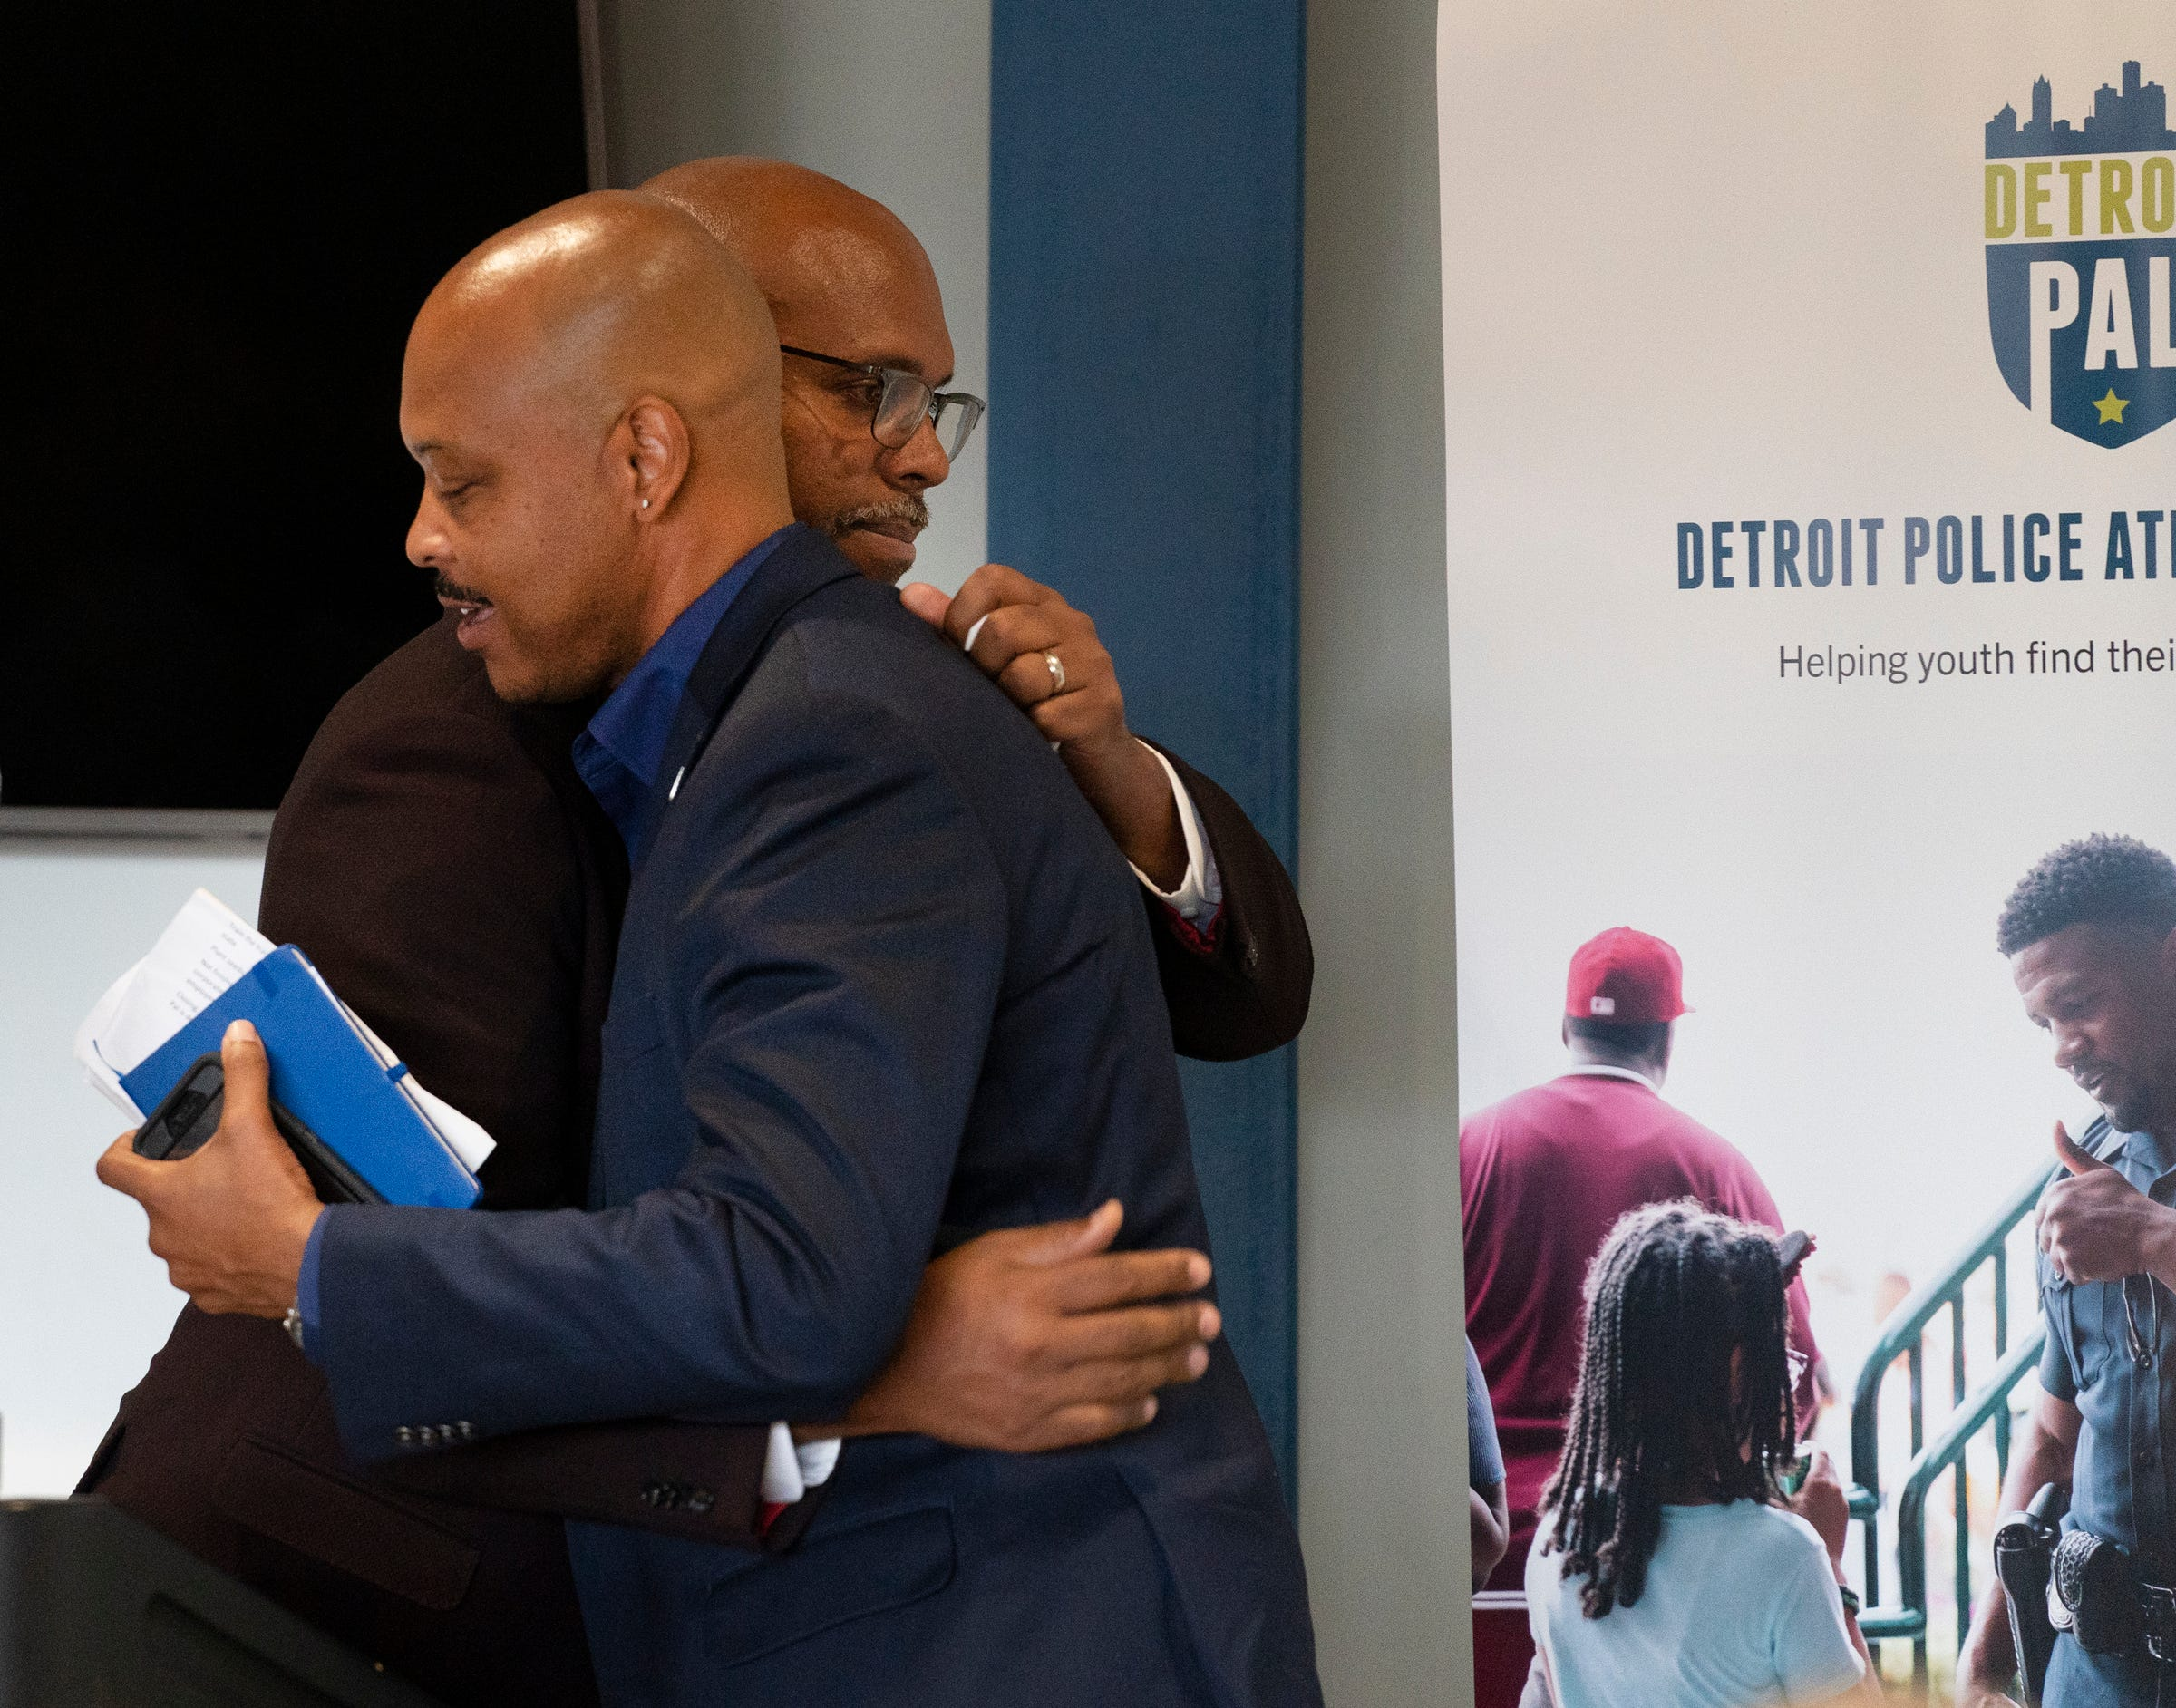 Detroit Police Athletic League (PAL) Director of Programs and Operations David Greenwood, left, hugs PAL CEO, Robert Jamerson as they celebrate some good news from the state of Michigan Monday, June 28, 2021. Legislators from the Michigan House of Representatives announced a new $15 million commitment to PAL, specifically PAL's new Community Connection Initiative.